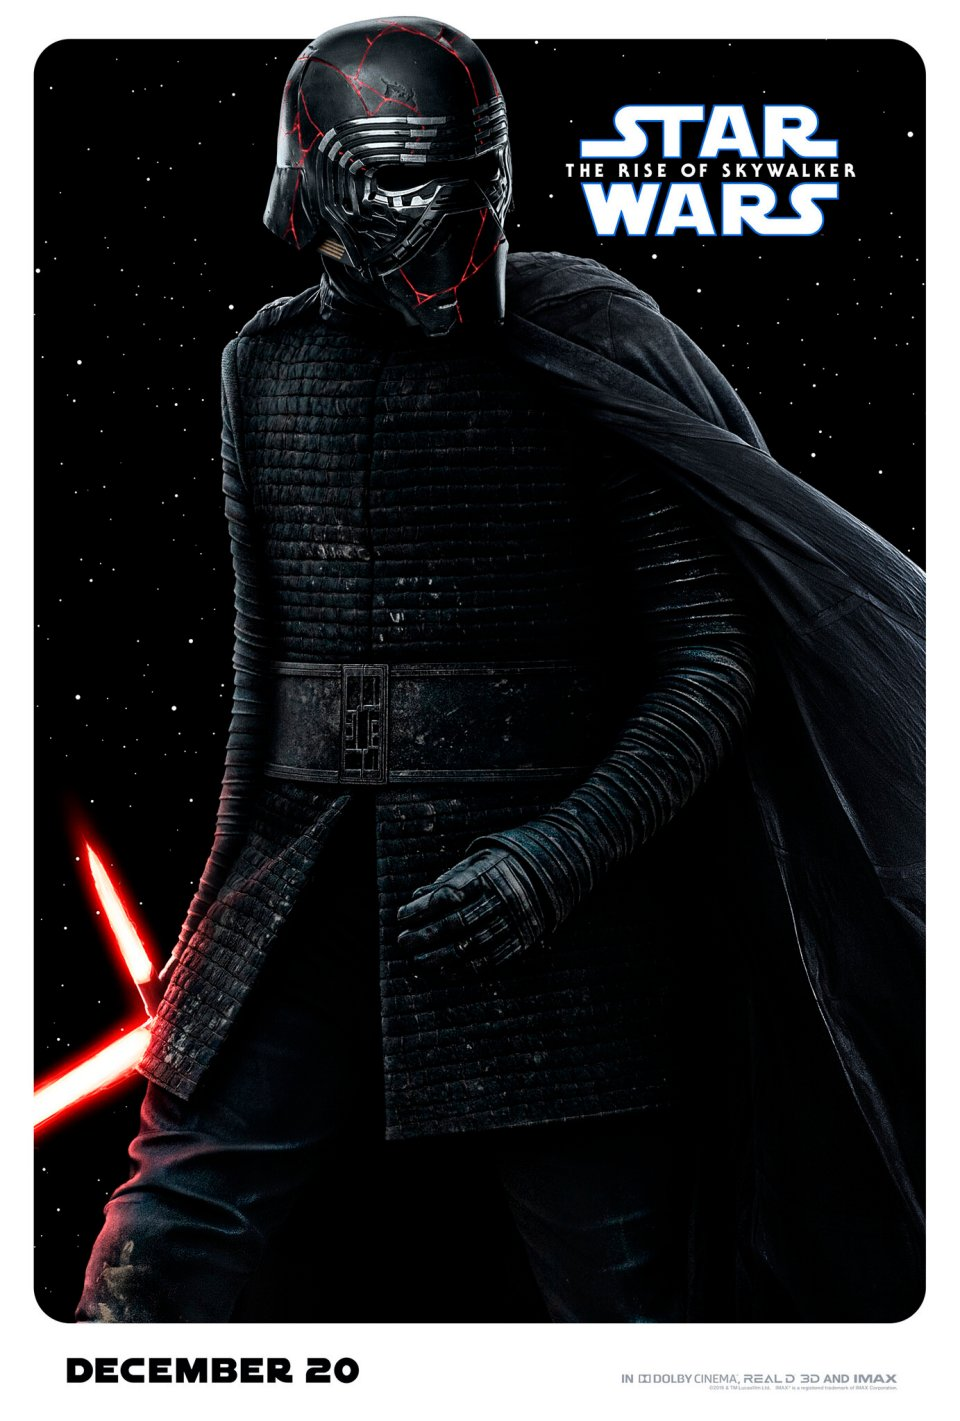 11-character-posters-released-for-star-wars-the-rise-of-skywalker11.jpg